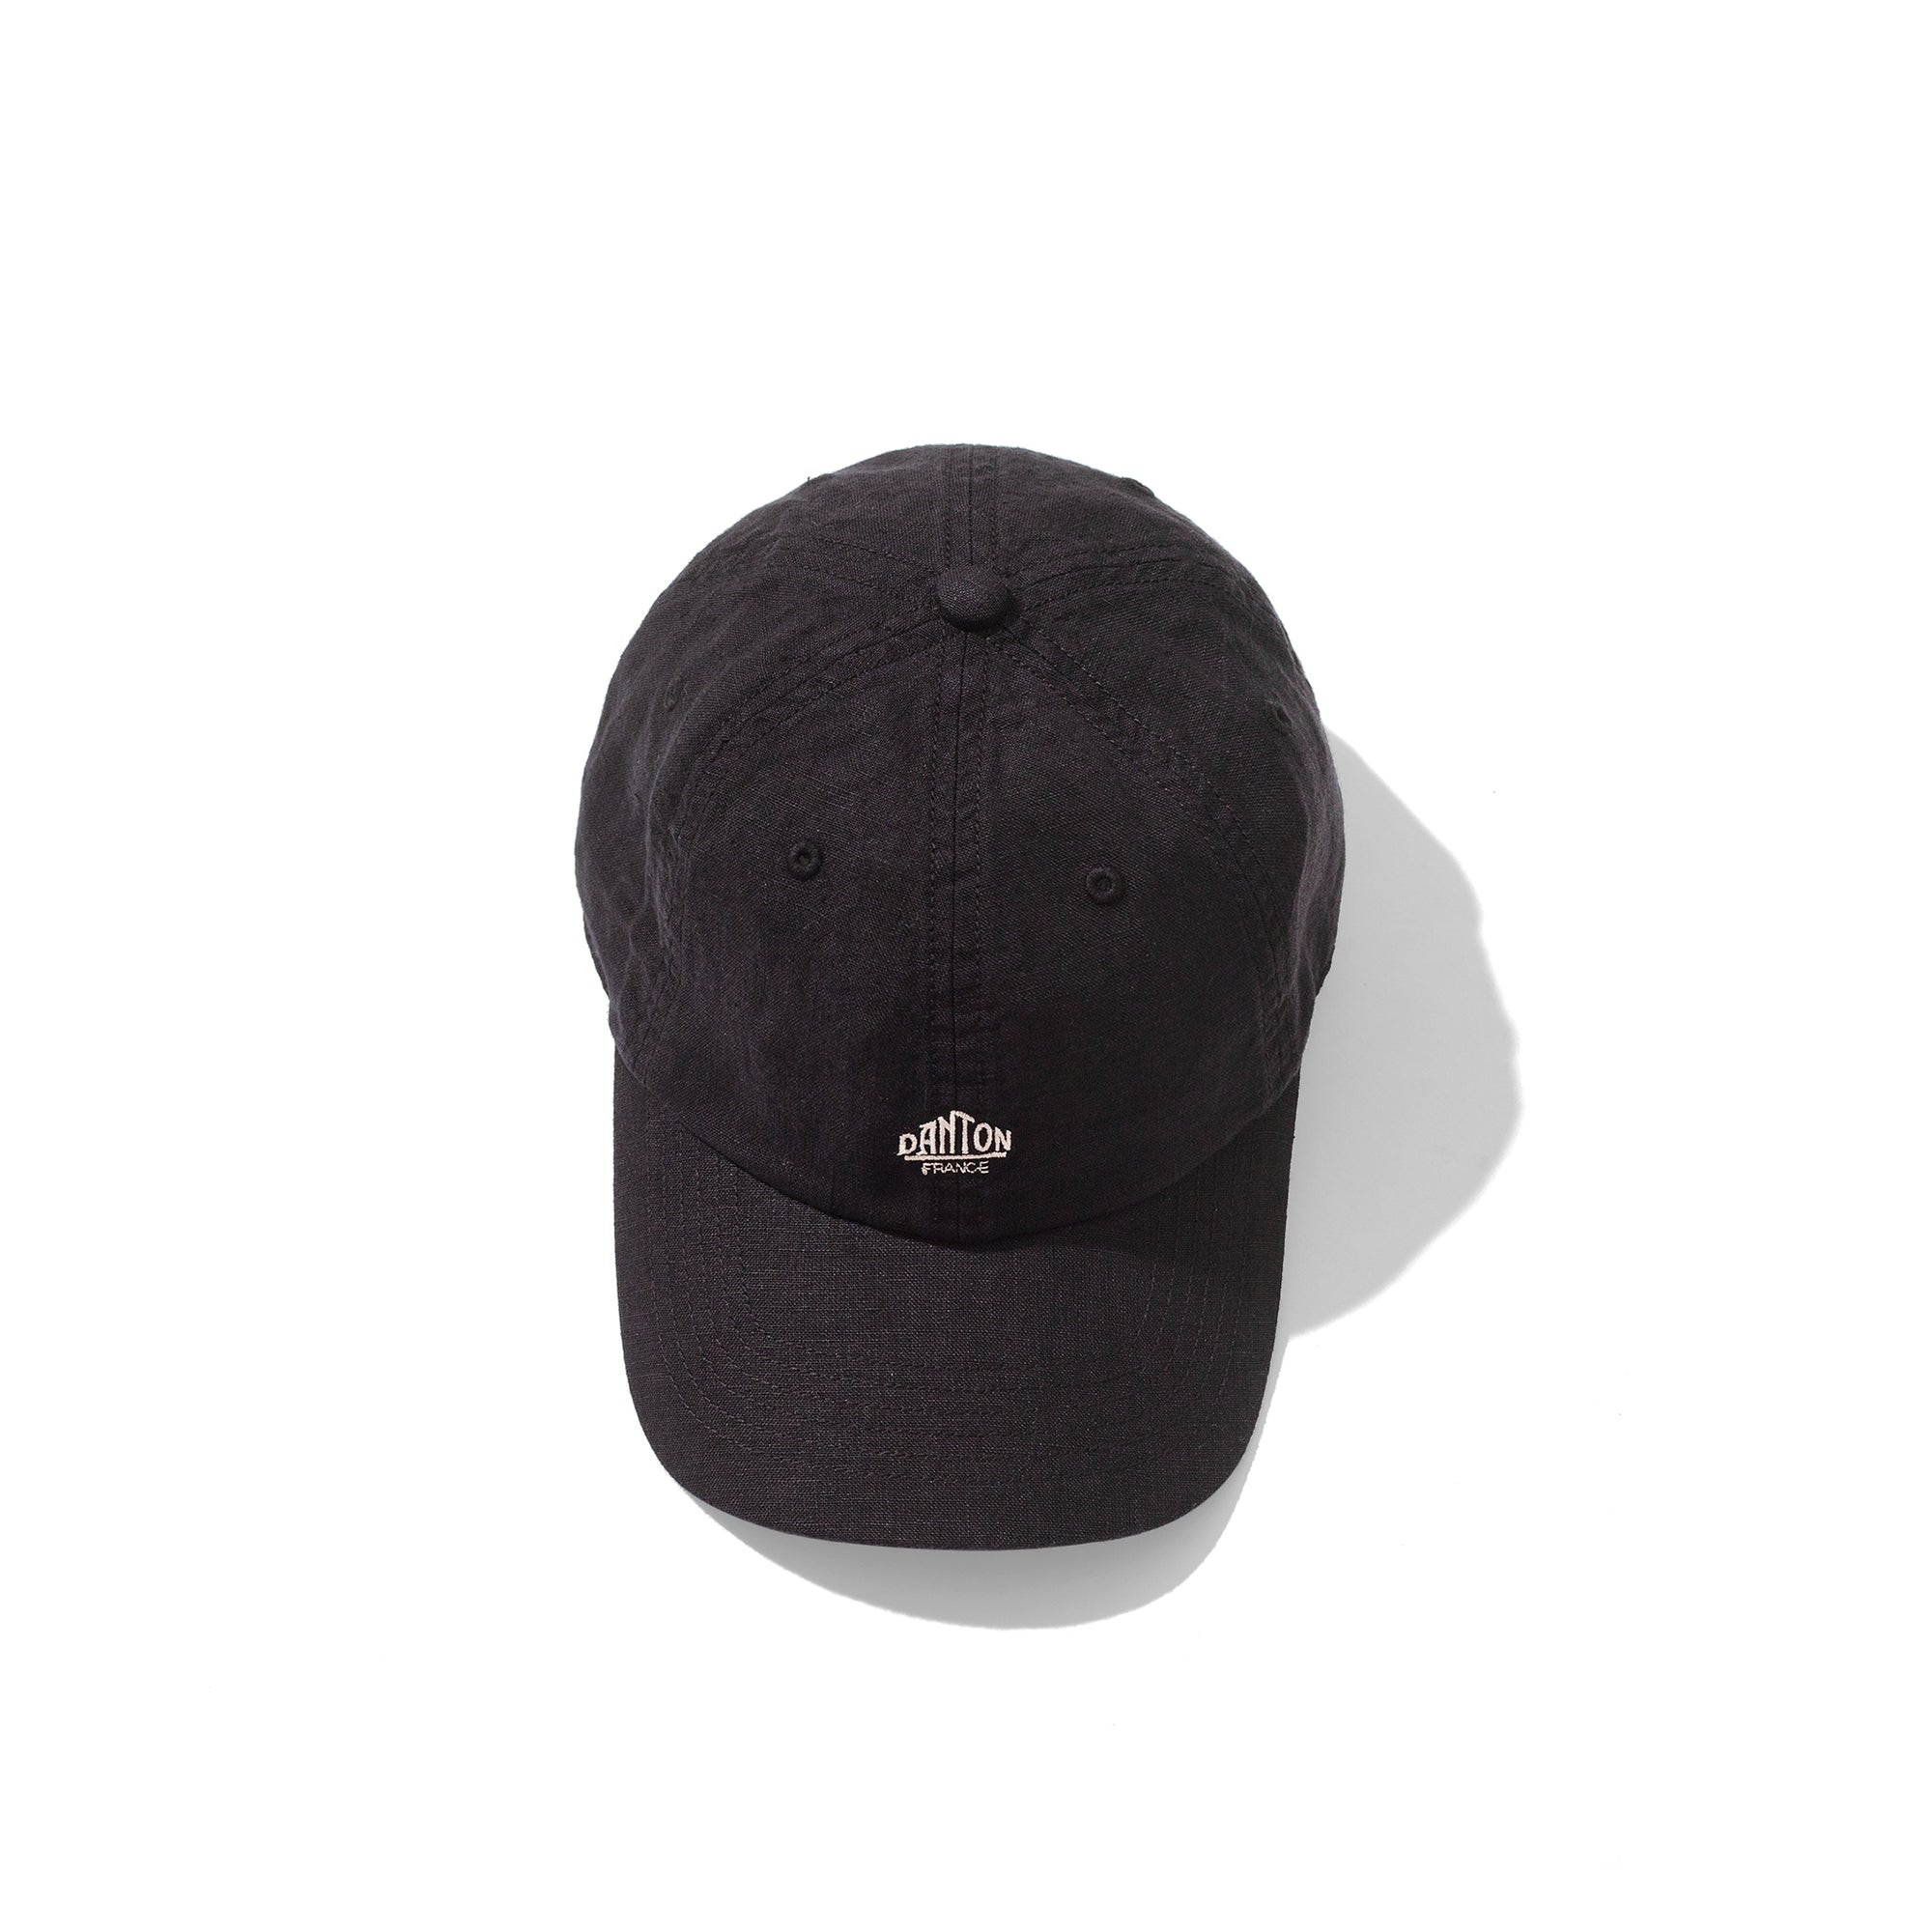 Danton Linen Cap: Black - The Union Project